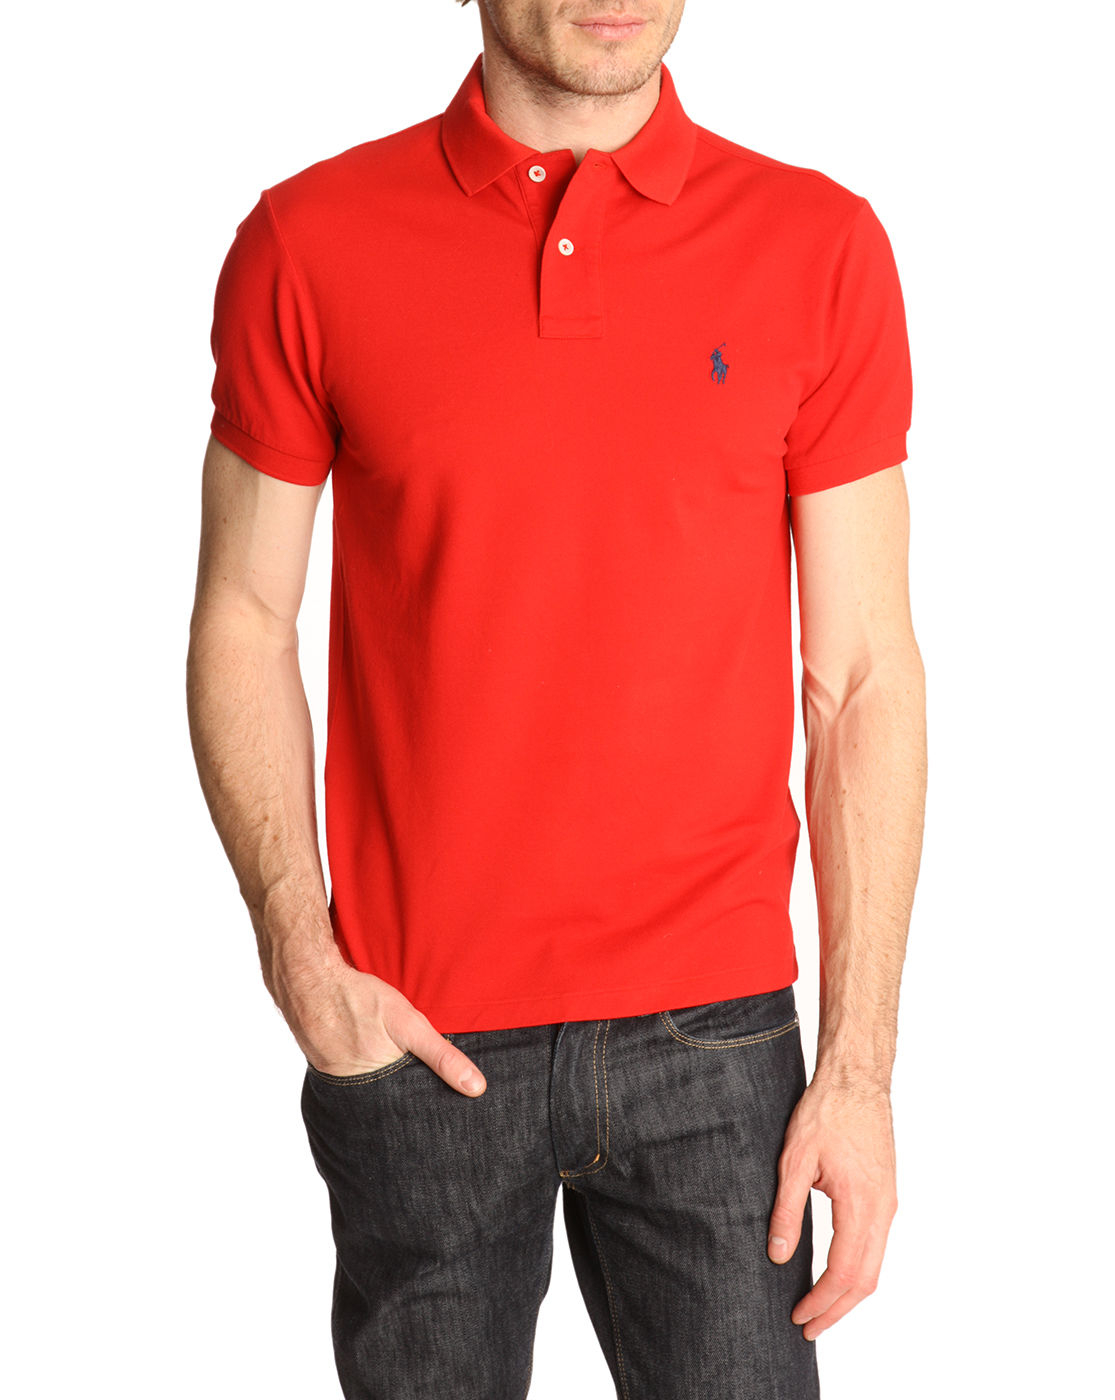 polo ralph lauren rl red slim fit stretch polo shirt in. Black Bedroom Furniture Sets. Home Design Ideas